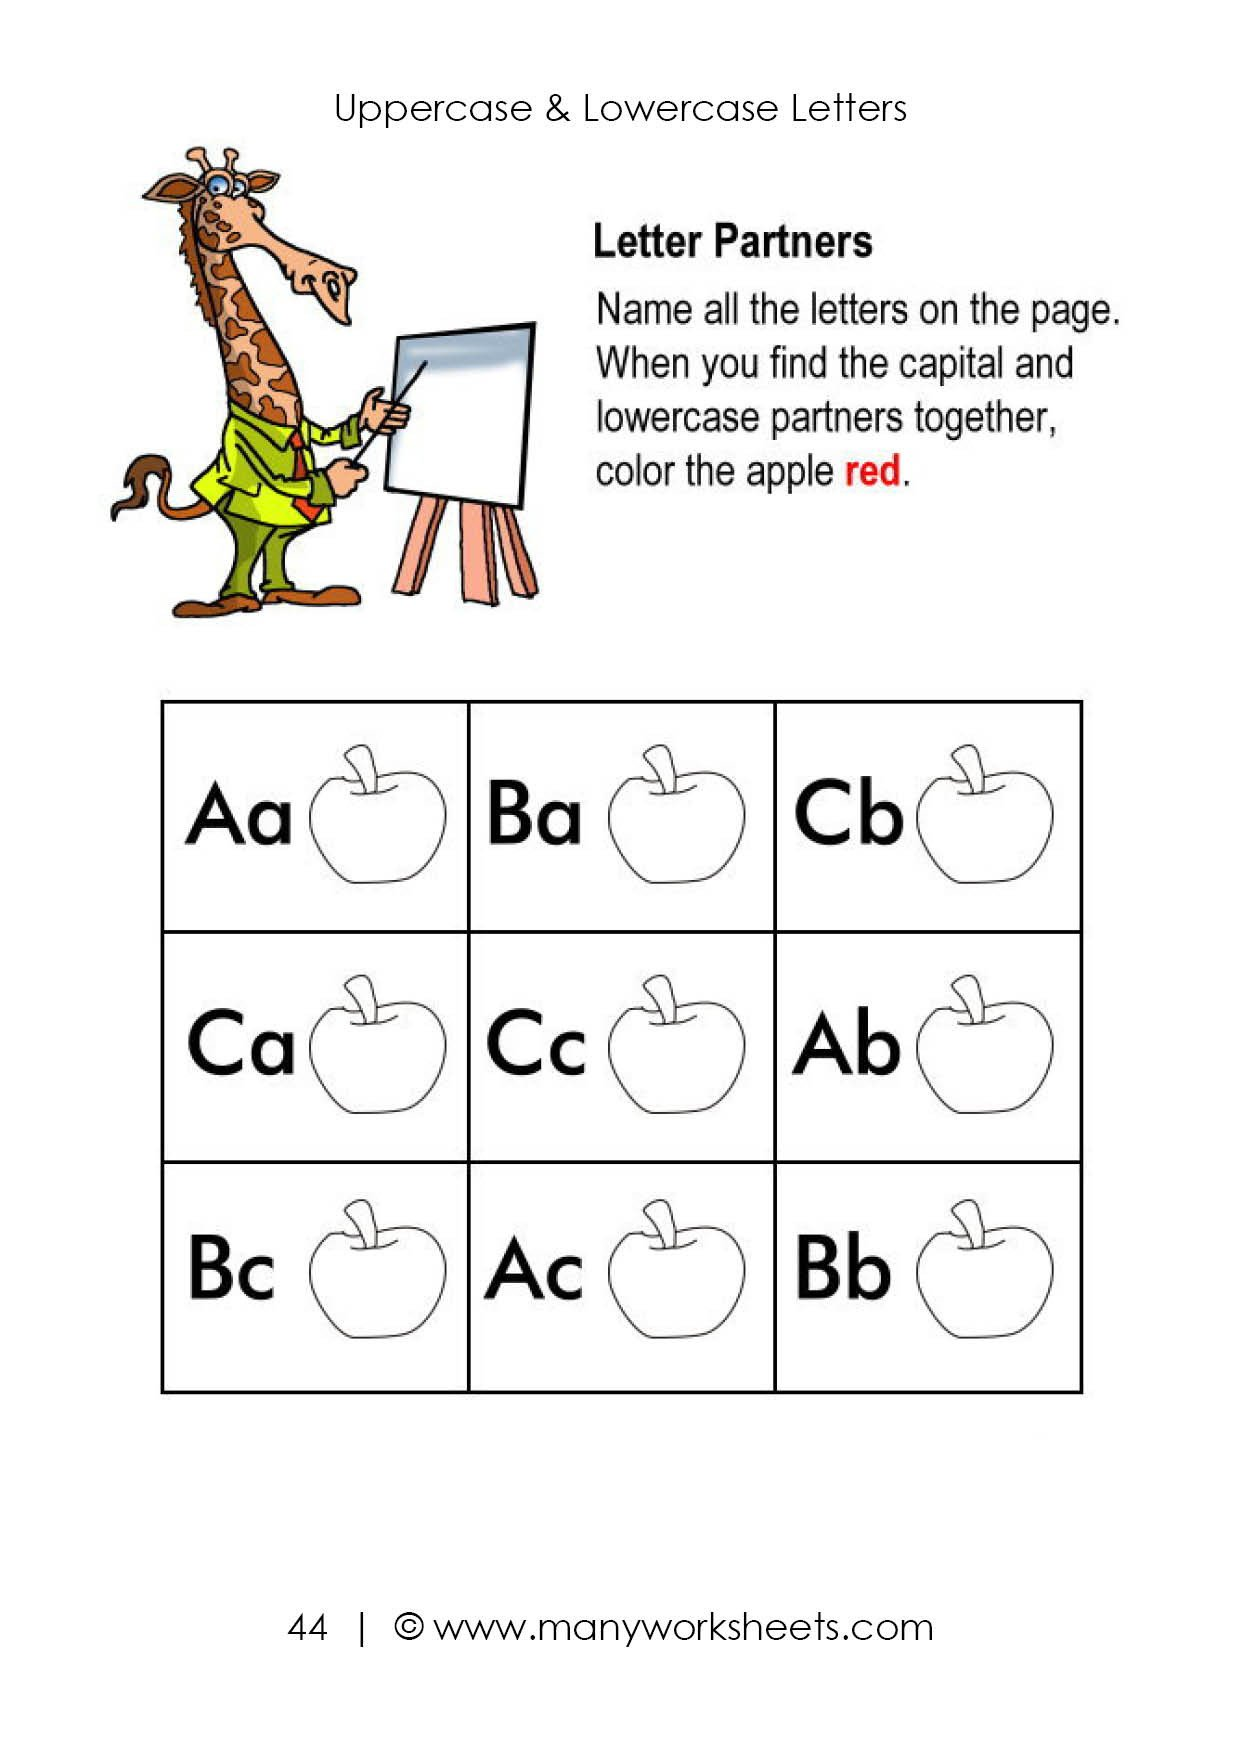 Uppercase and Lowercase Worksheets Uppercase and Lowercase Letters Worksheet